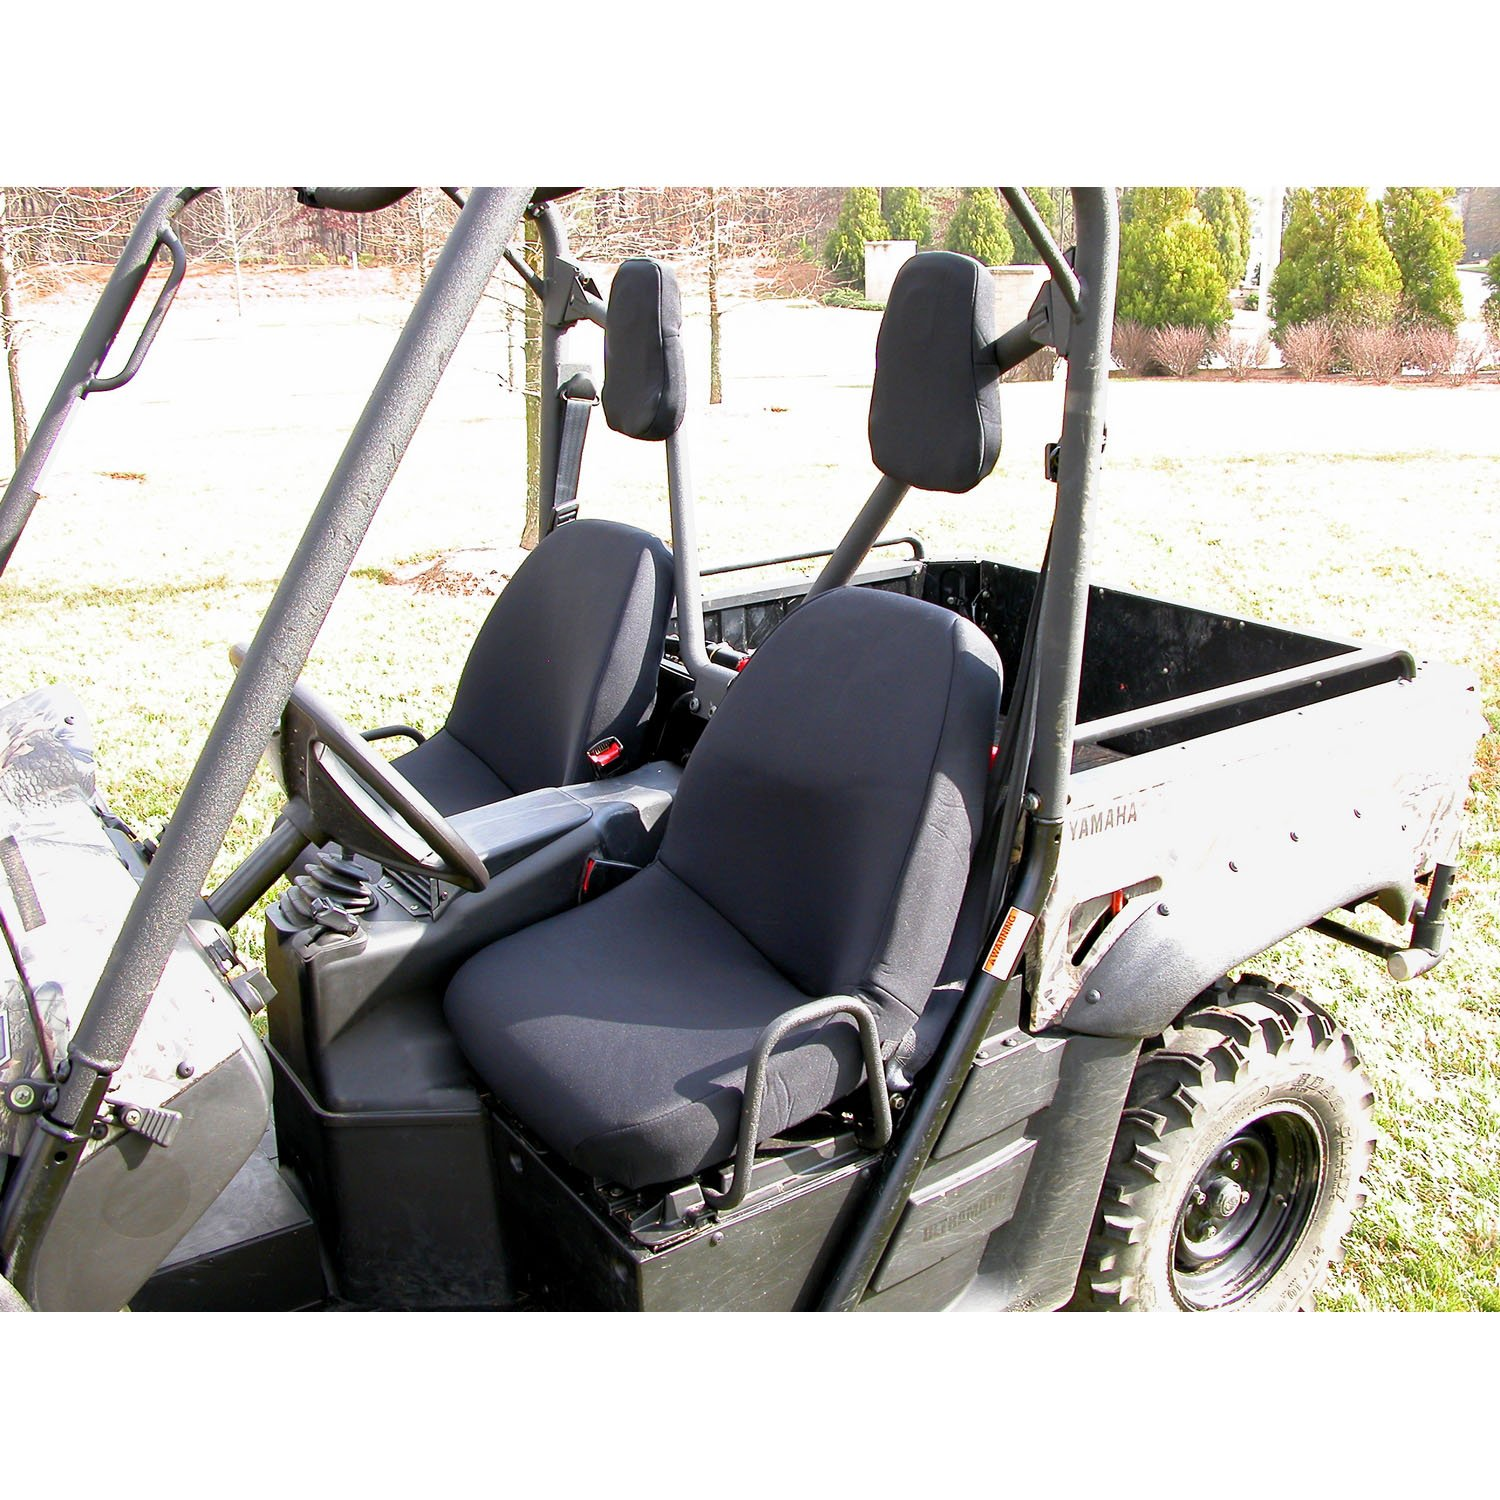 Rugged Ridge 63210.01 Black Neoprene Seat Cover for Yamaha Rhino - Pair by Rugged Ridge